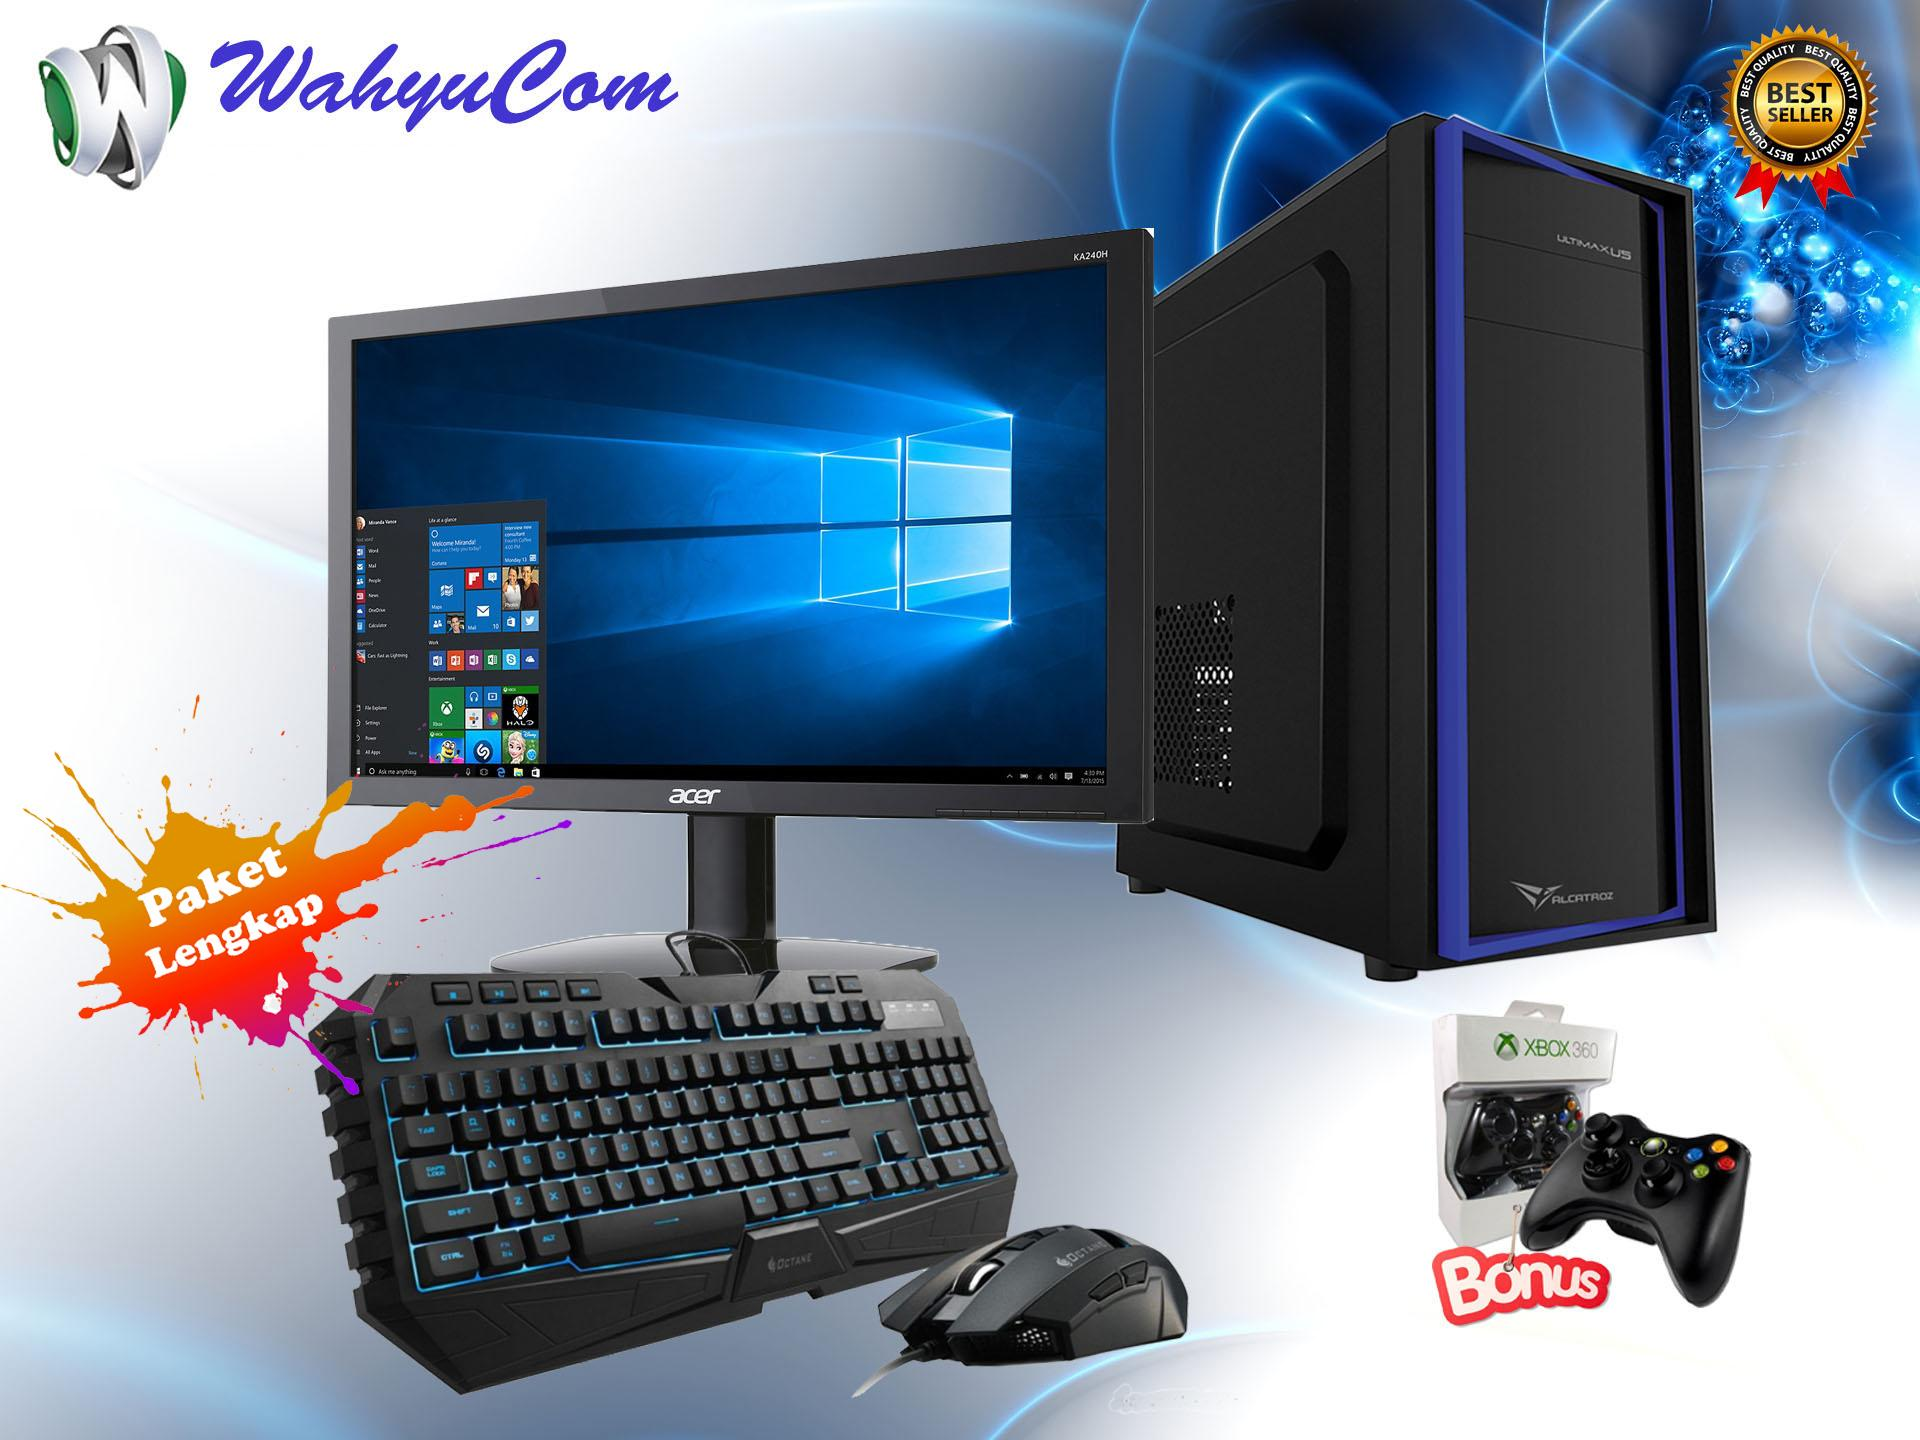 Pc Rakitan Core I5 2400 By Wahyucom